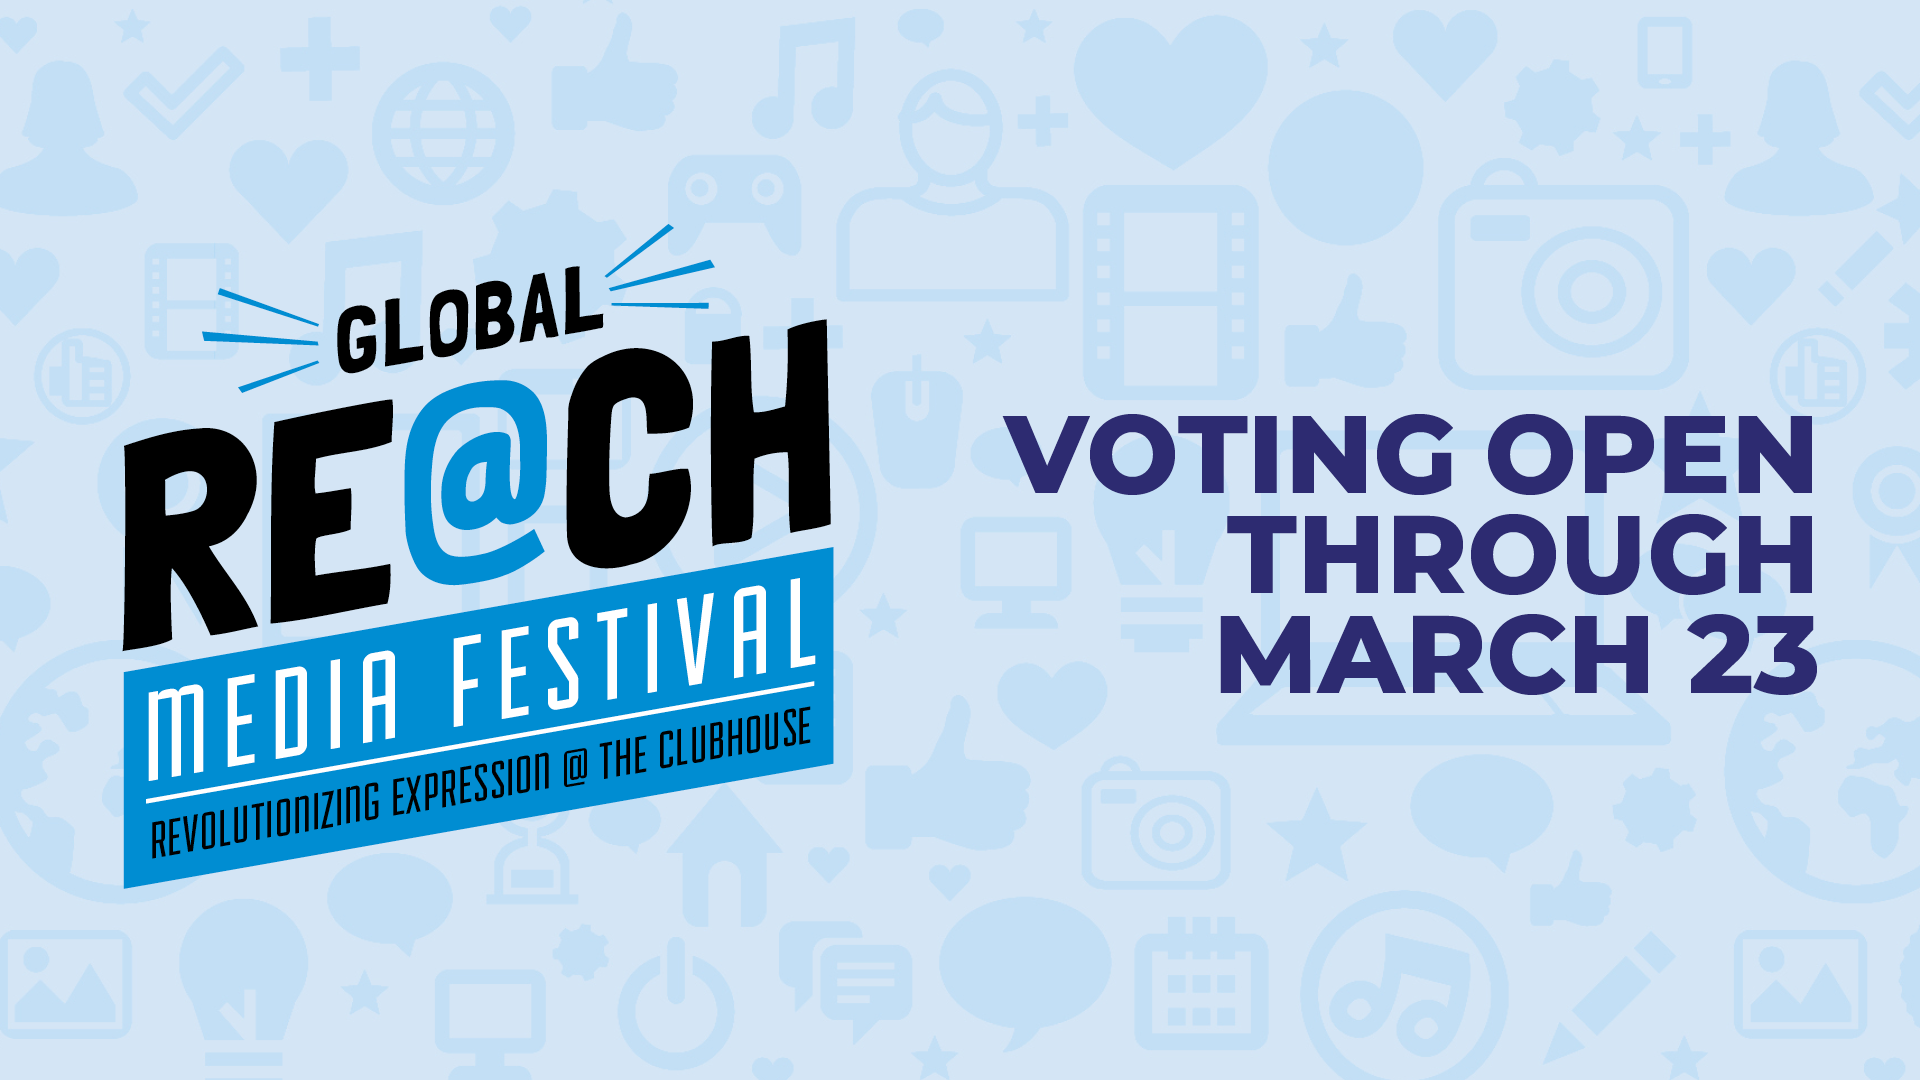 Reach Media Festival Voting Open Through Mar 23